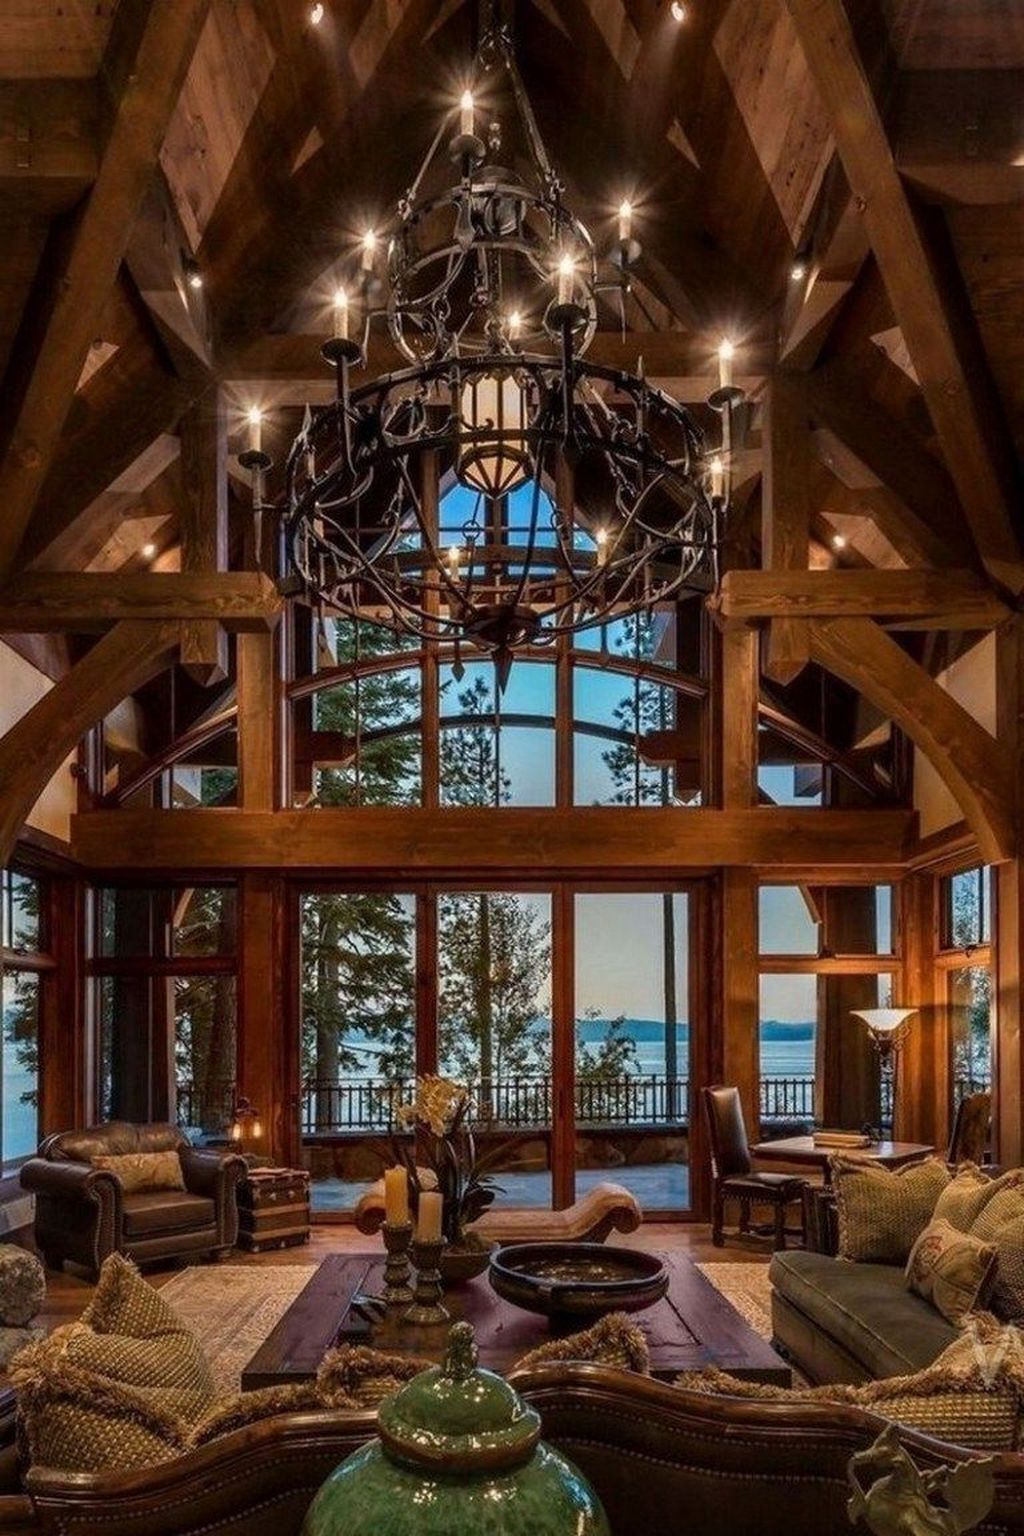 20 Fabulous Fireplace Design Ideas To Try Rustic House Rustic Home Design Home Fireplace